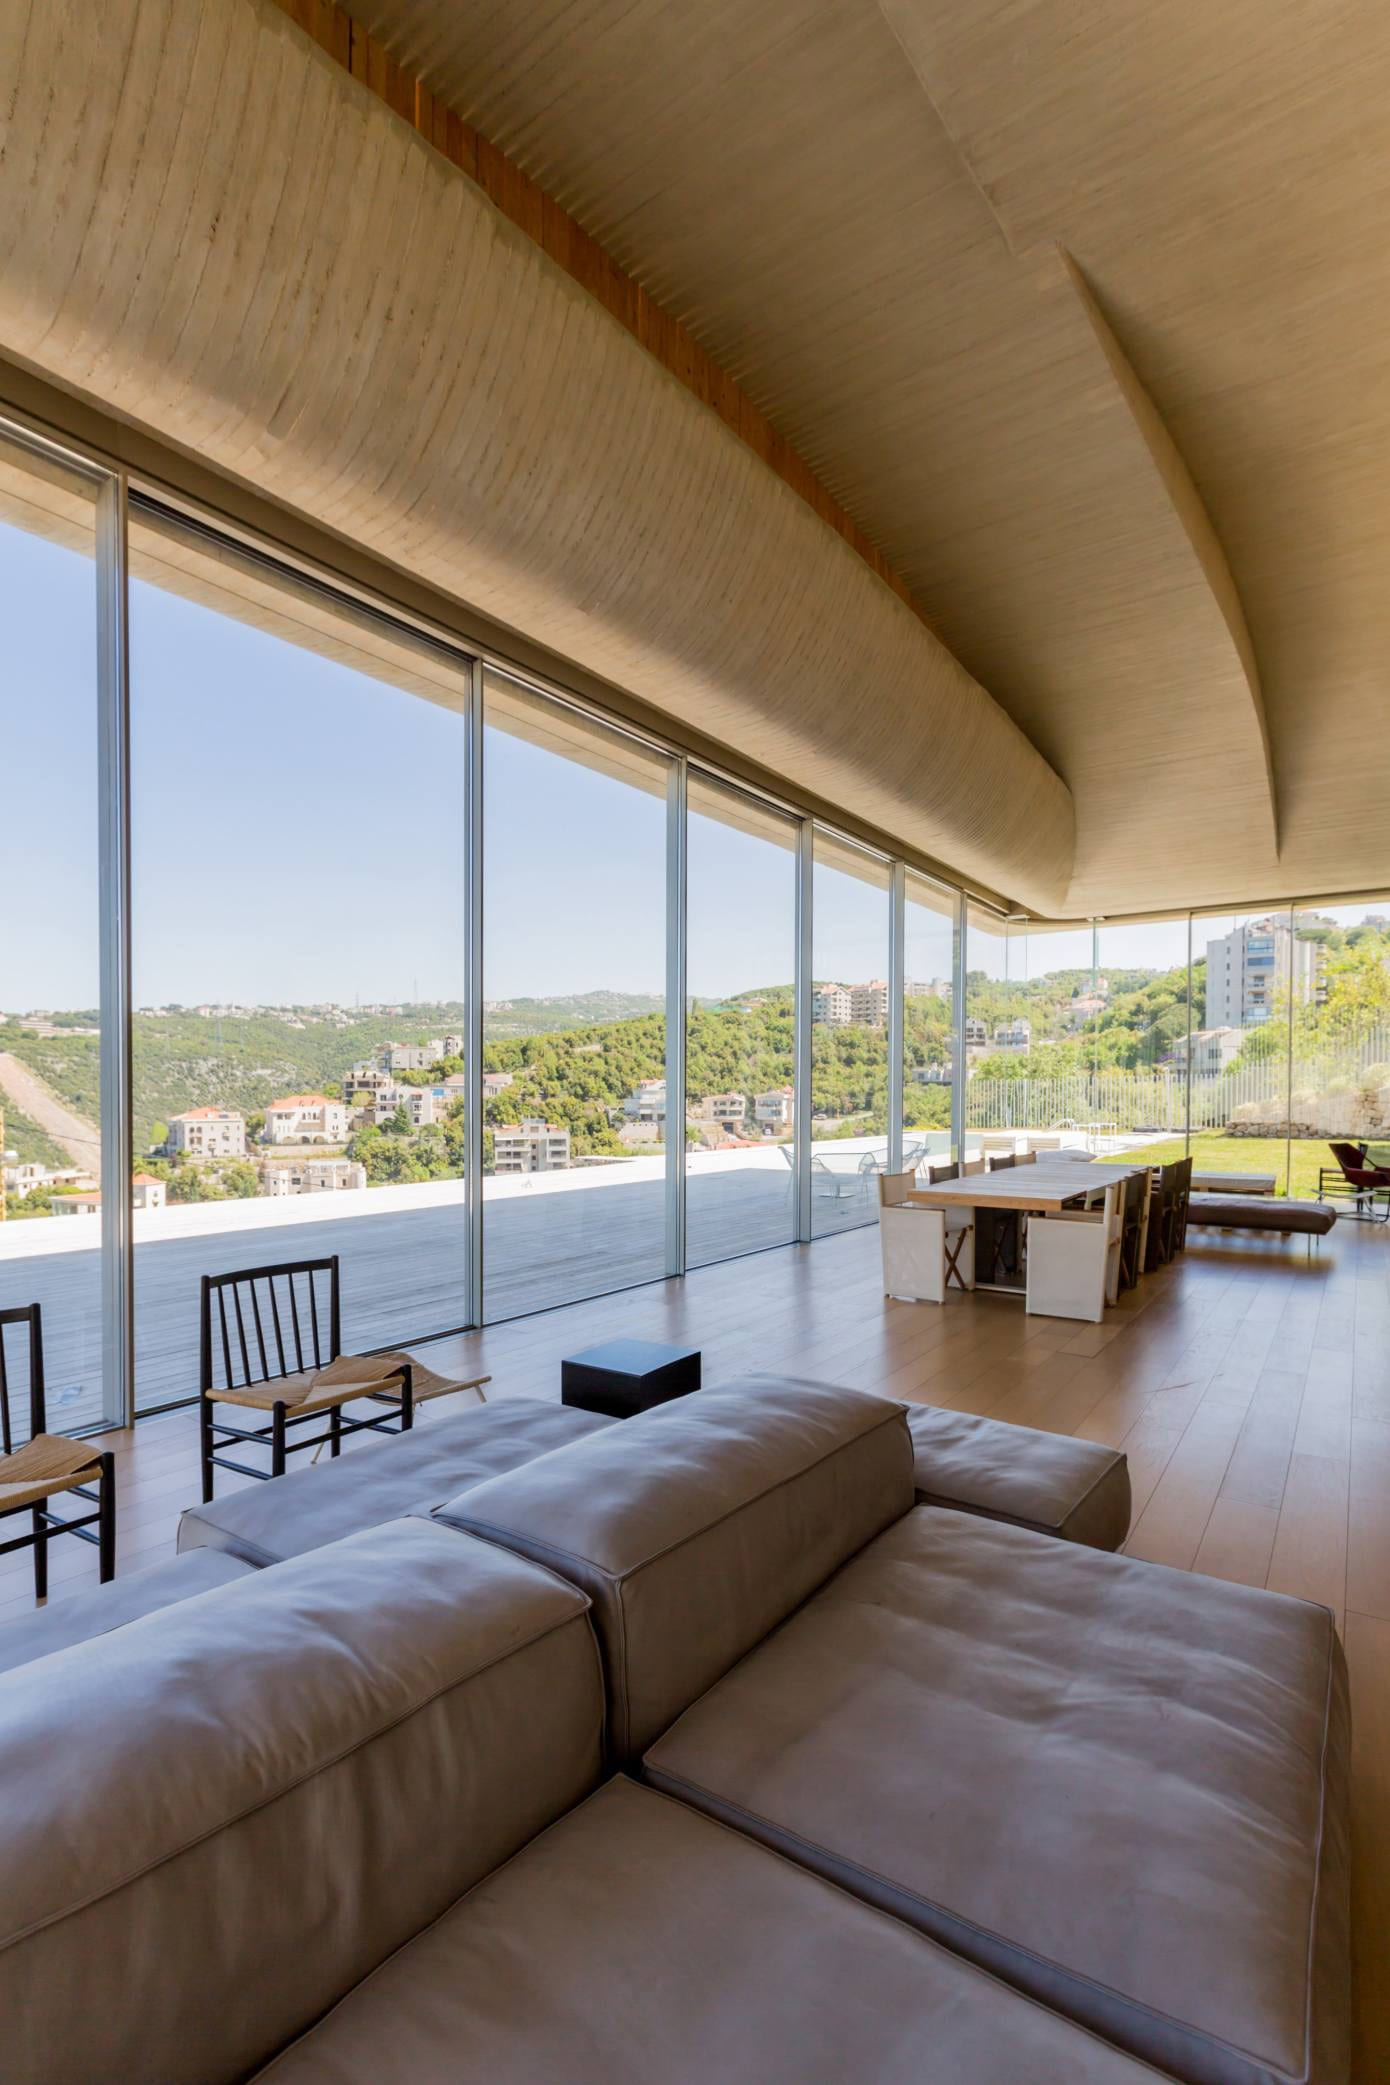 VR Villa in Beirut, Lebanon by Youssef Tohme Architects and Associates | Yellowtrace